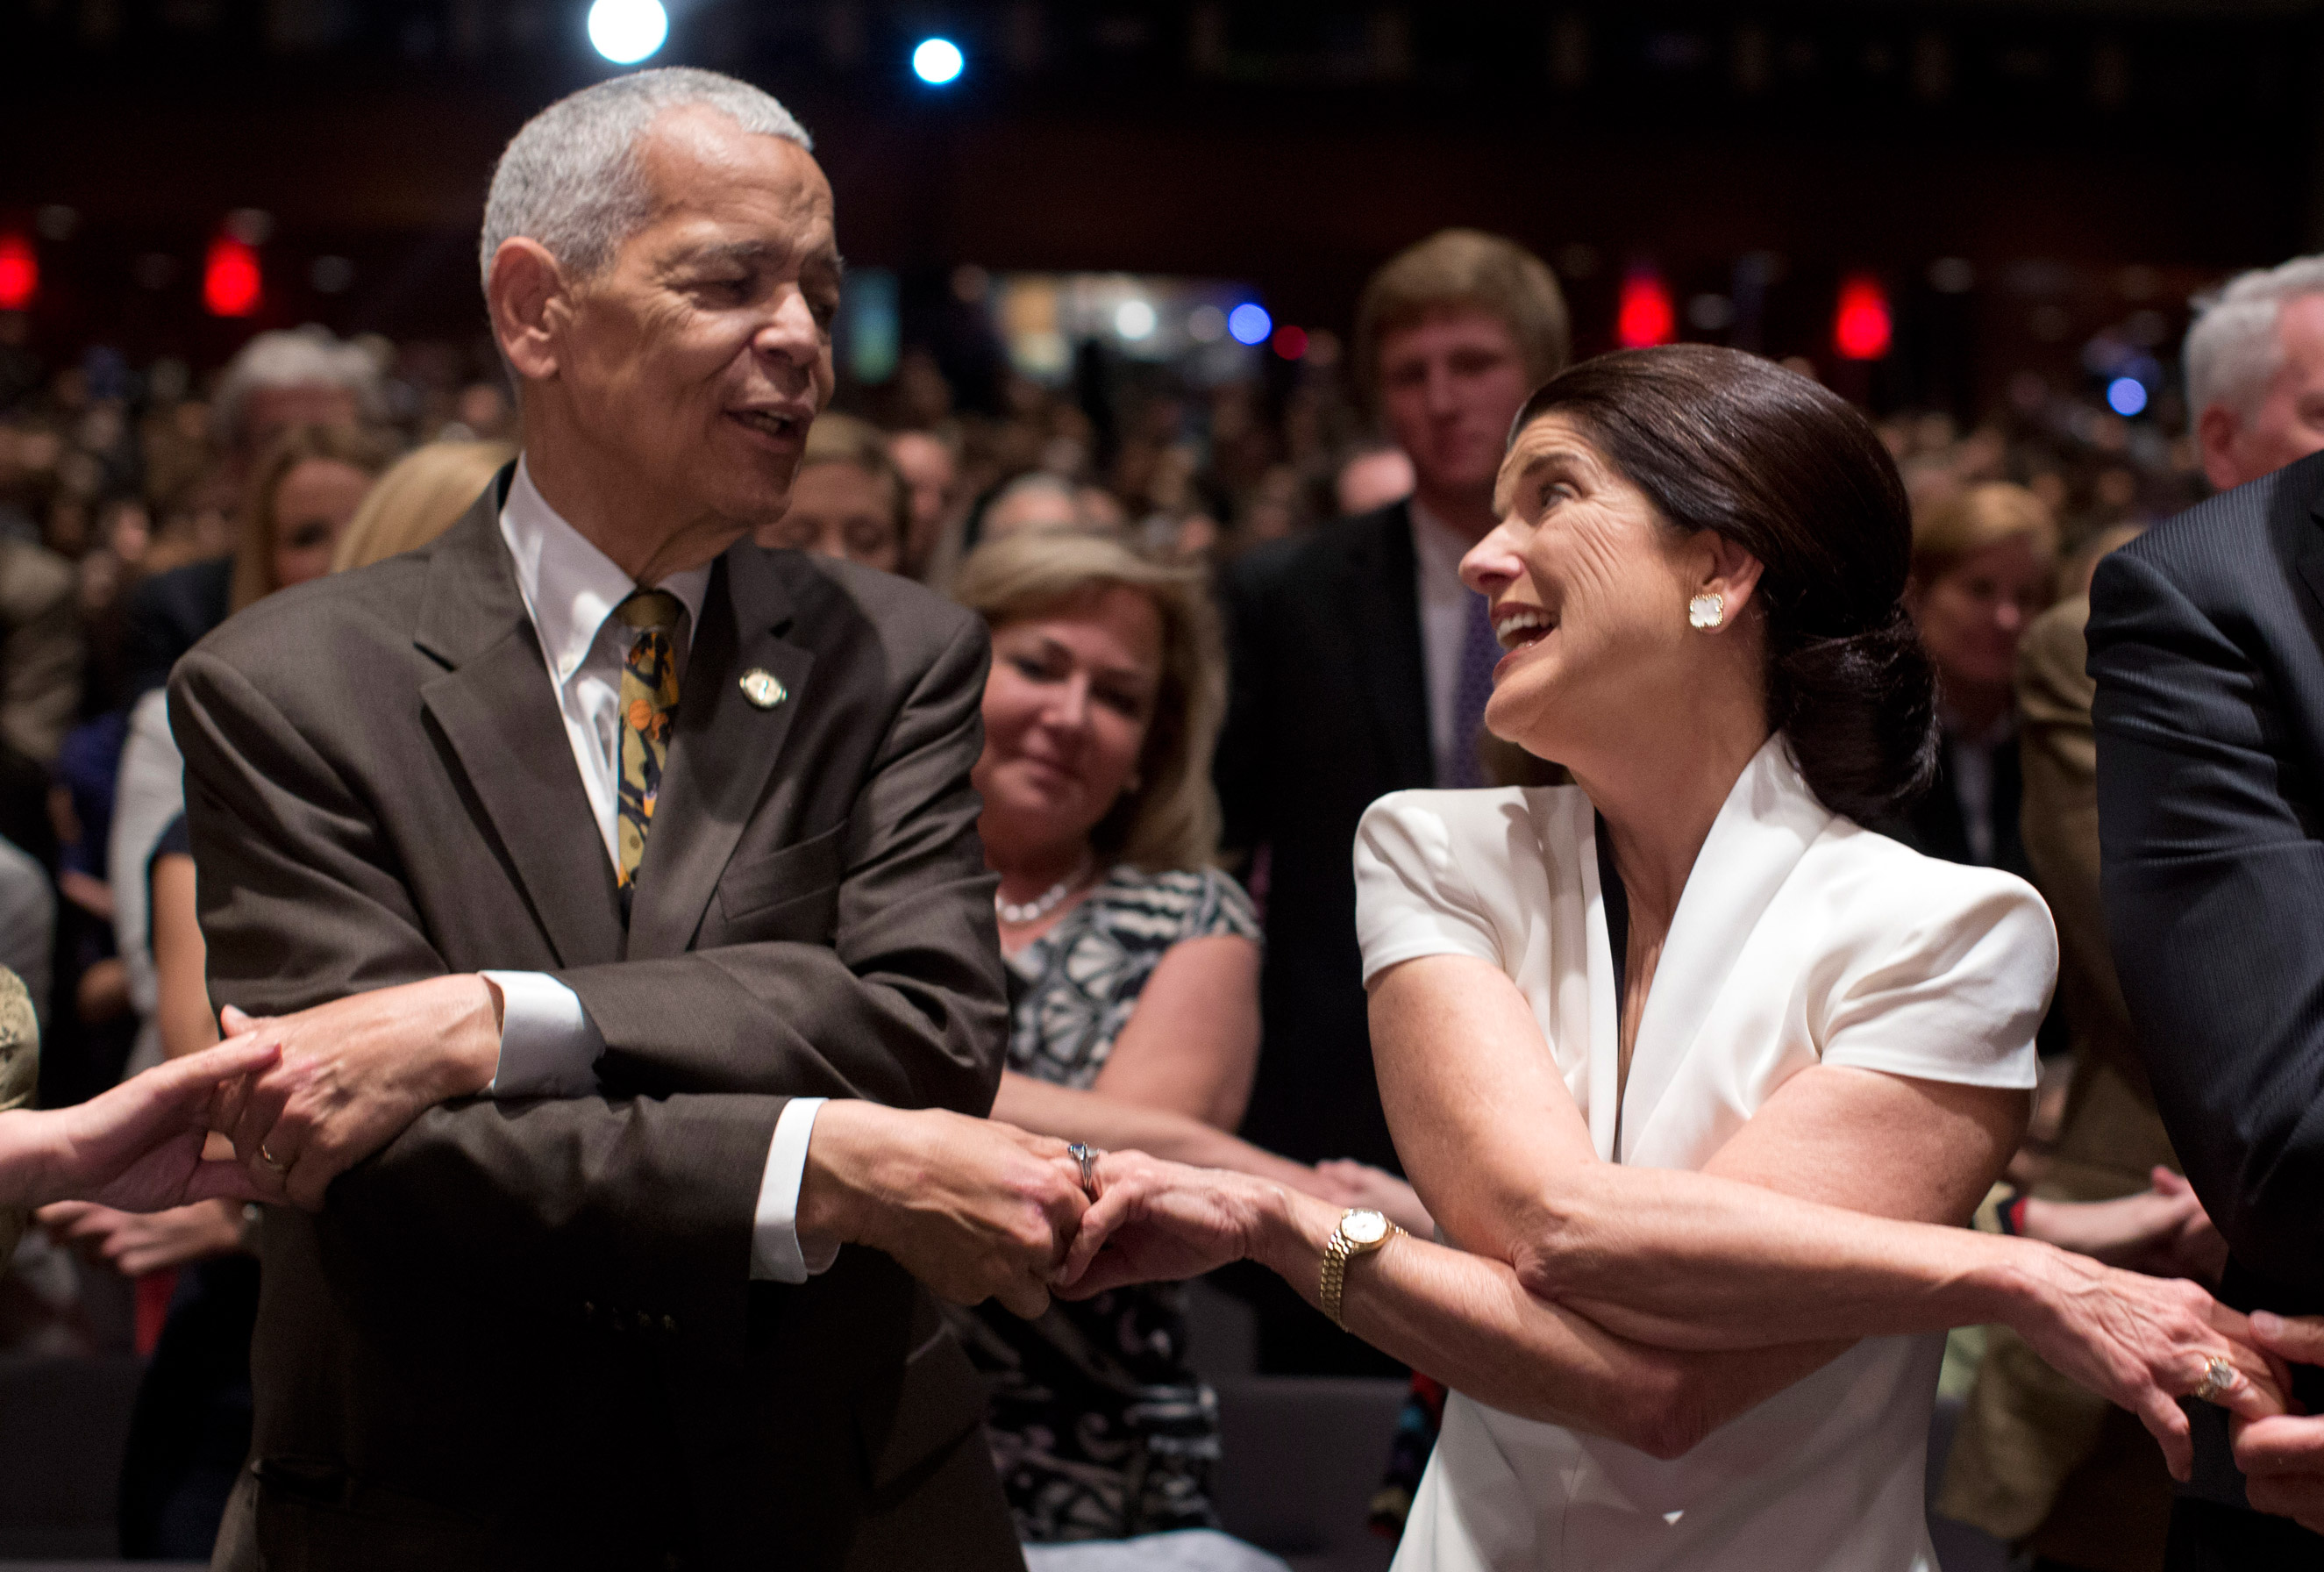 Julian Bond and Luci Baines Johnson, the younger daughter of President Lyndon Baines Johnson, join hands as they sing  We Shall Overcome  before President Barack Obama spoke at the LBJ Presidential Library on April 10, 2014, in Austin during the Civil Rights Summit to commemorate the 50th anniversary of the signing of the Civil Rights Act